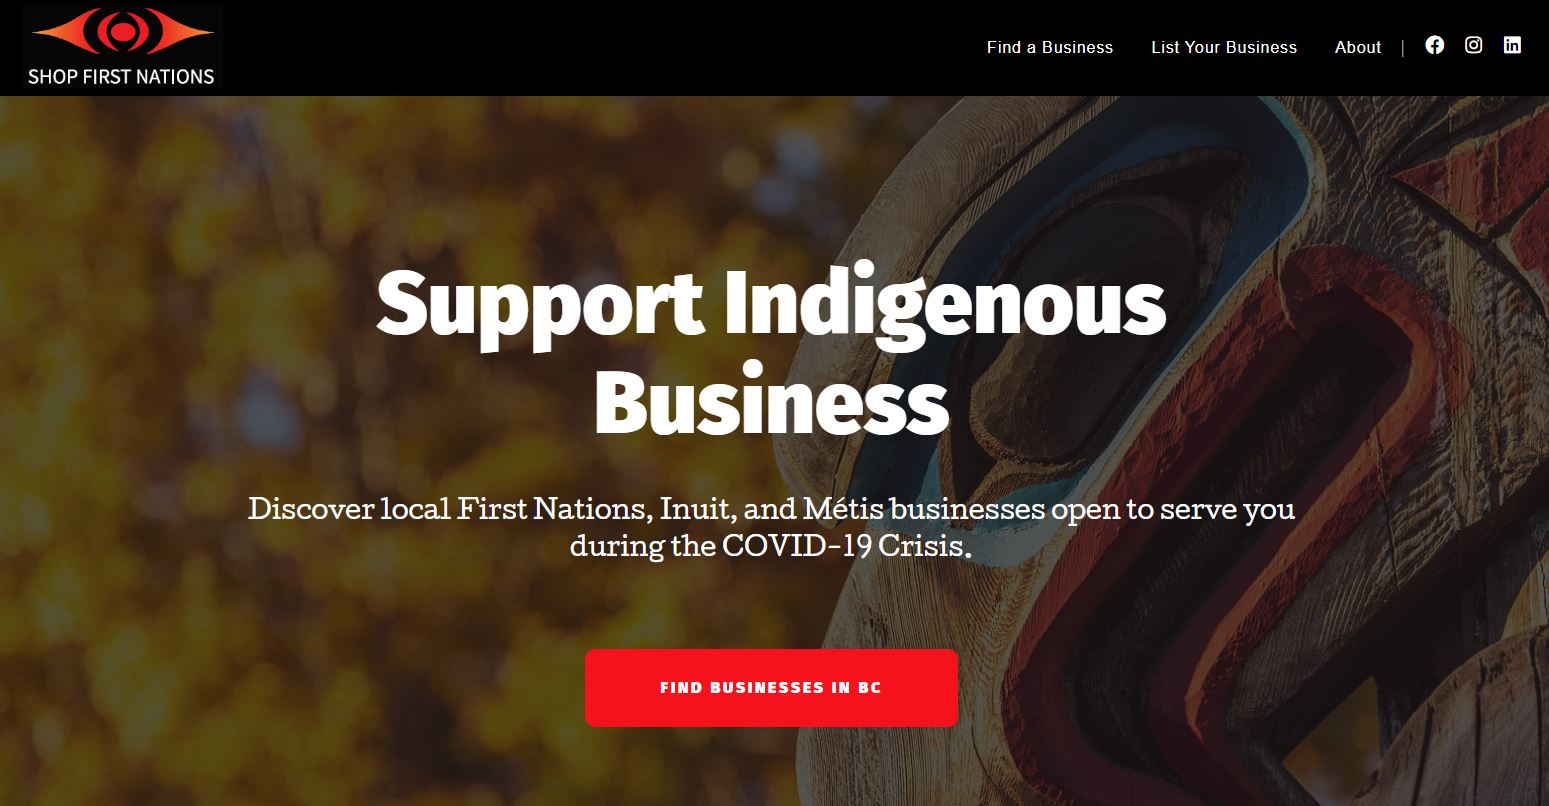 landing page image for Shop First Nations website